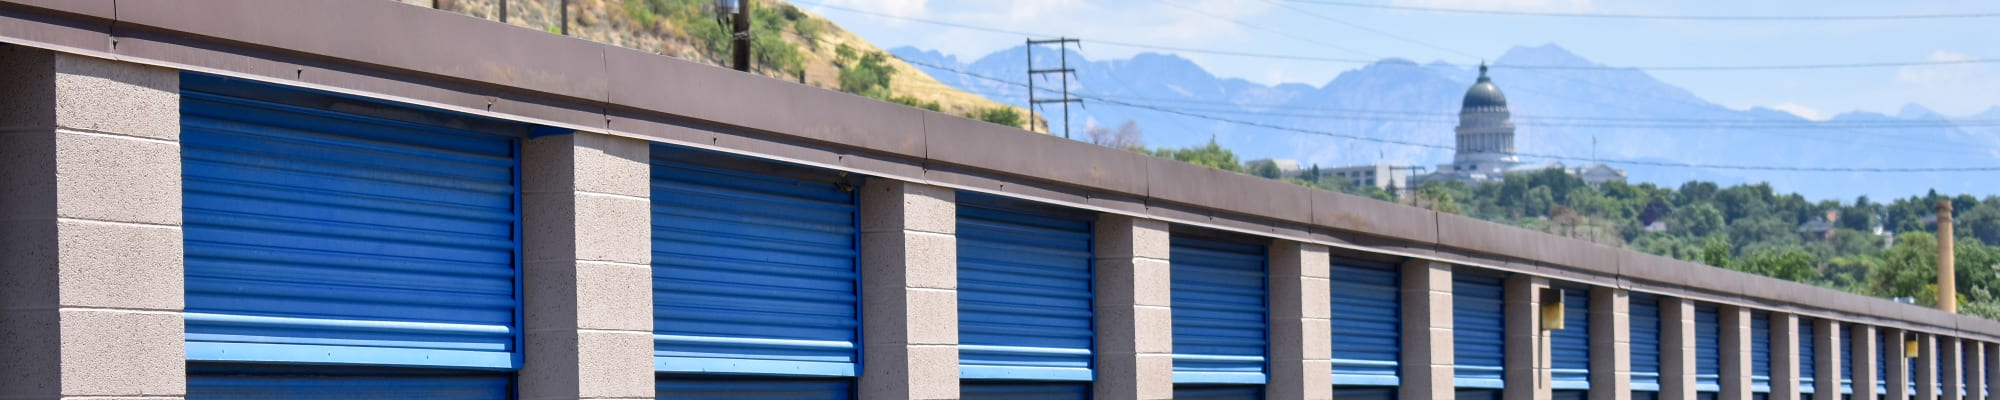 Drive-up storage at STOR-N-LOCK Self Storage in Salt Lake City, Utah